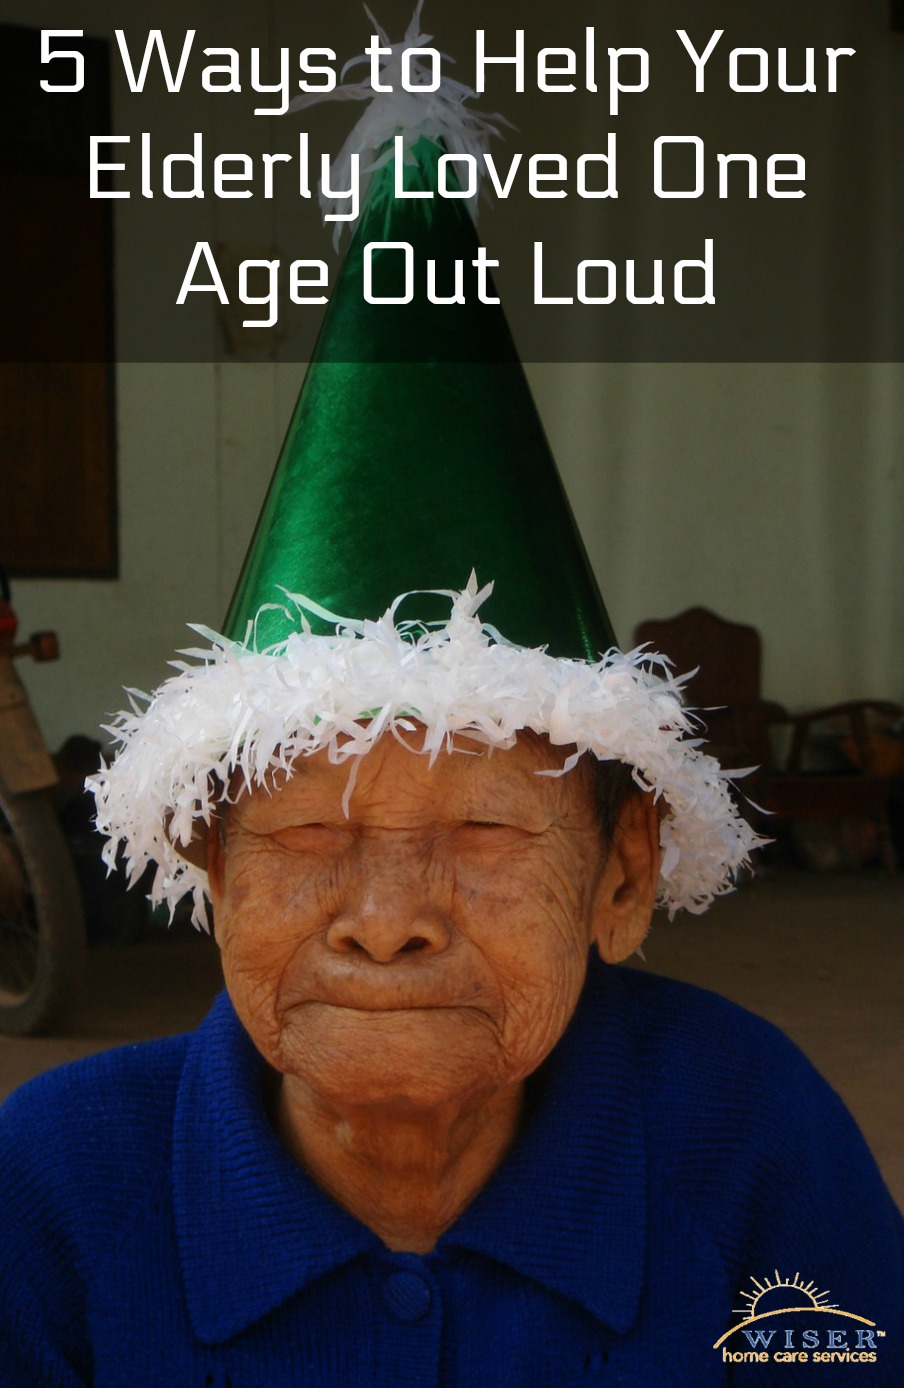 Celebrated nationally each May, Older American's Month aims to raise awareness & appreciation of the aging population. This year the theme is age out loud.